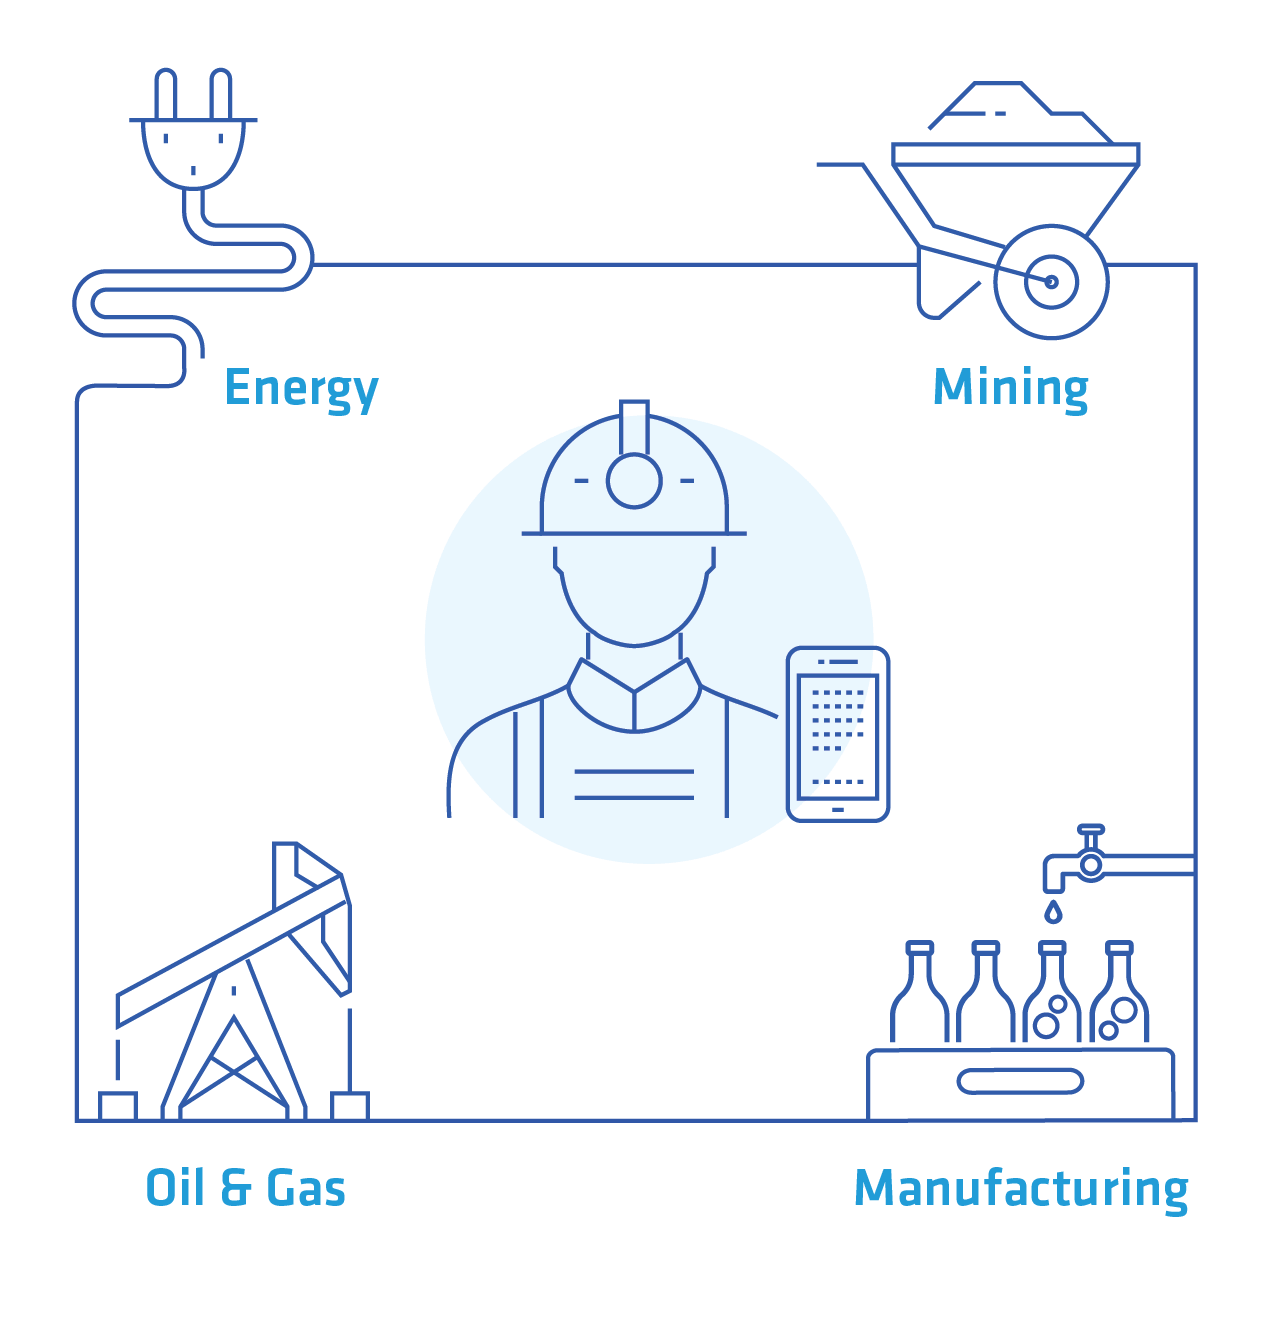 Graphic of Webalo user with mobile device – industries are energy, mining, oil & gas, manufacturing